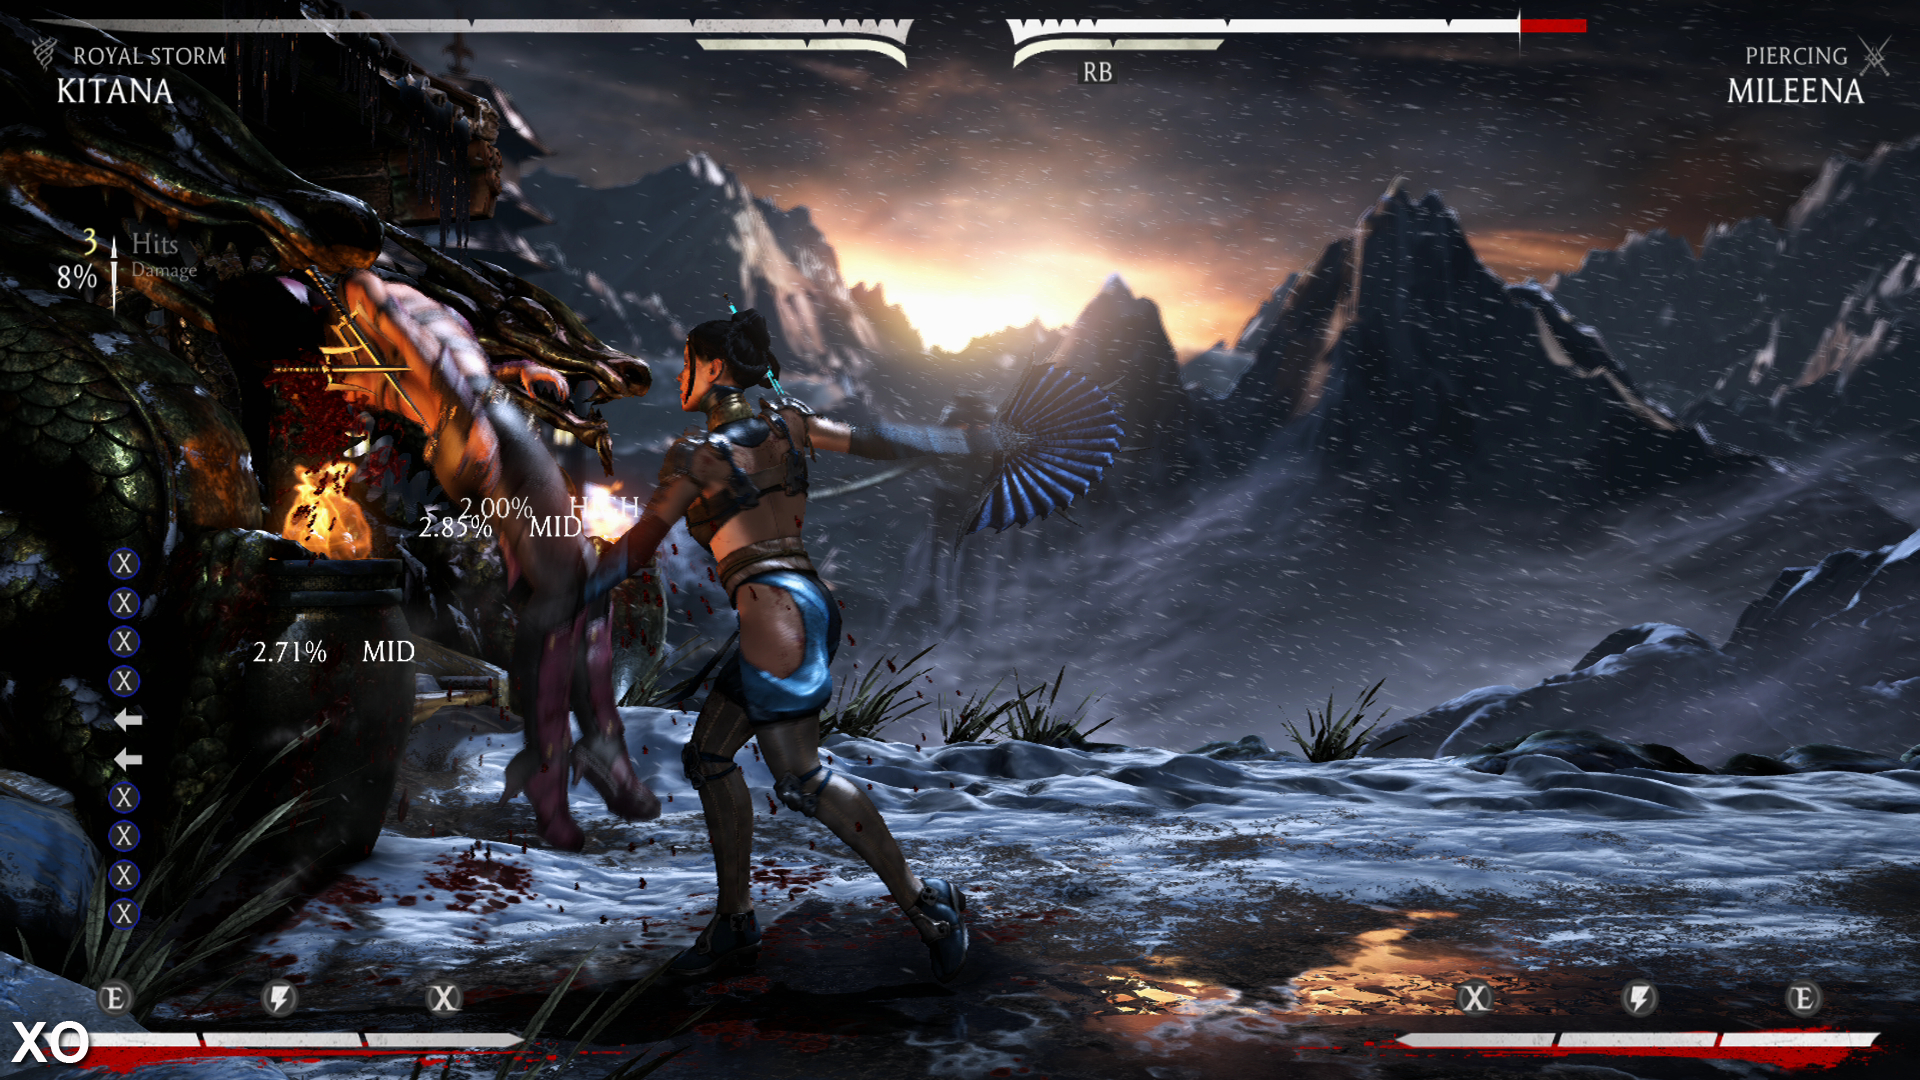 mkx online matchmaking